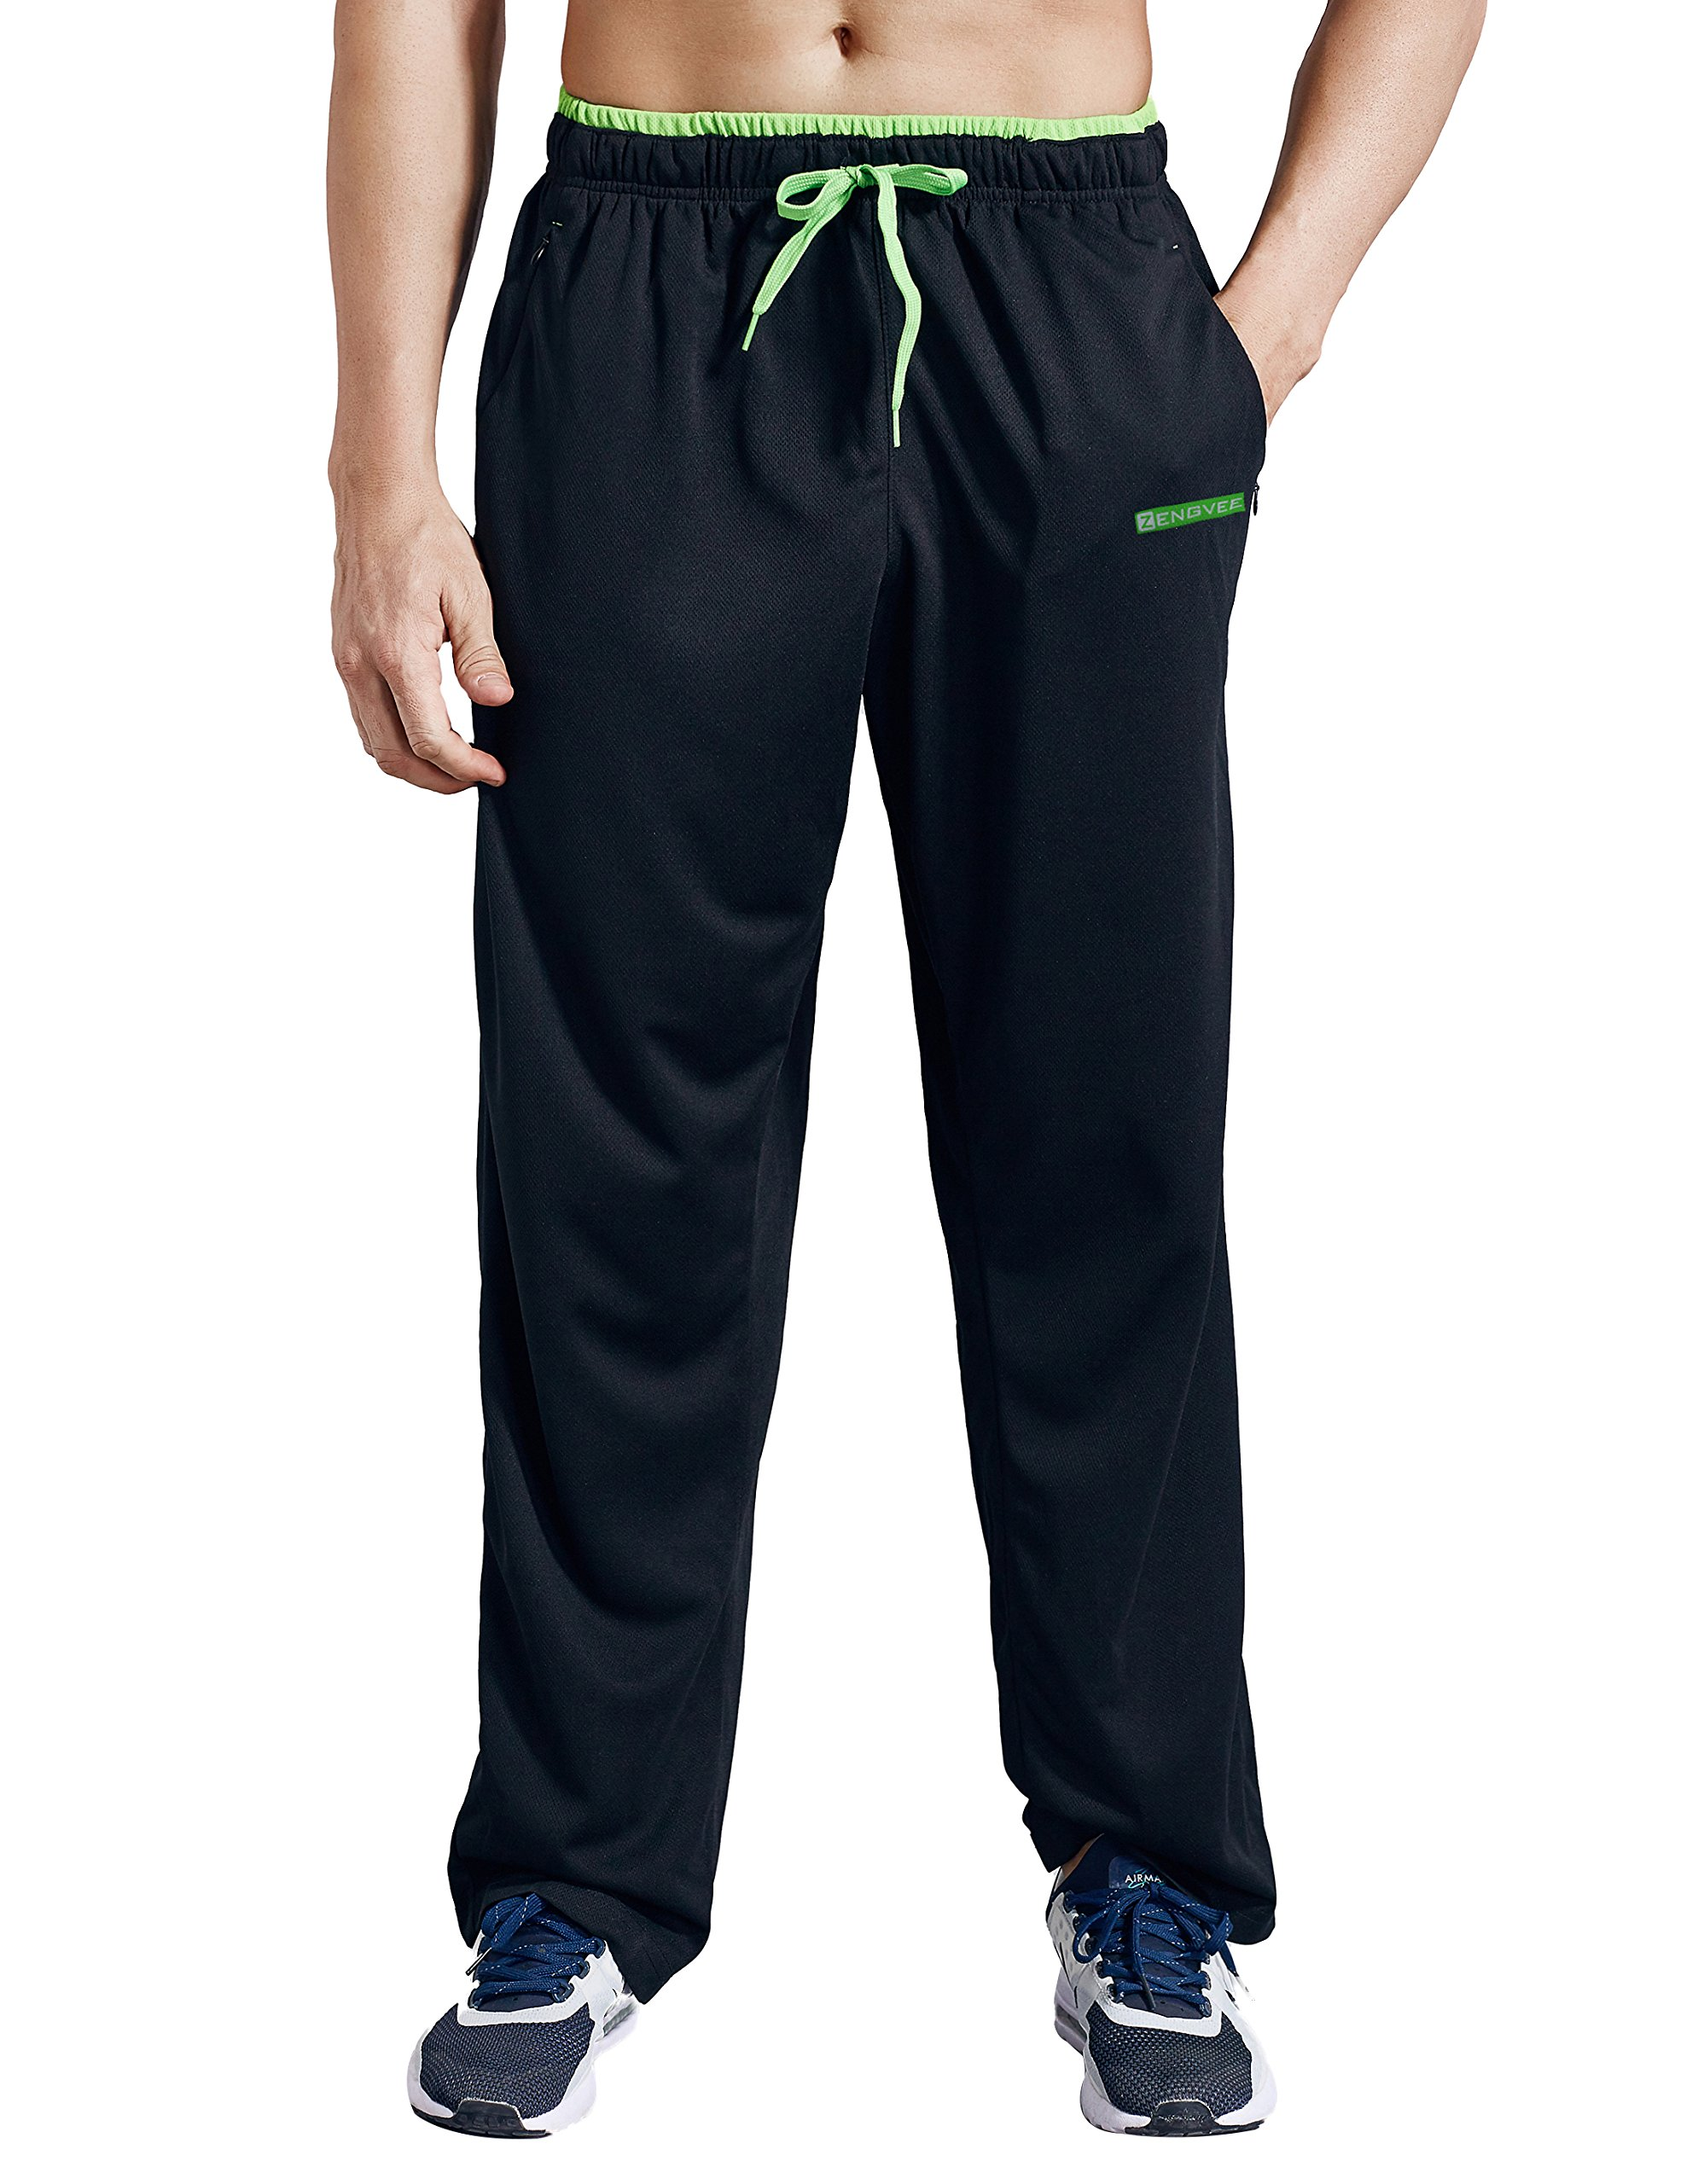 ZENGVEE Men's Sweatpants with Zipper Poc- Buy Online in Bahamas at Desertcart